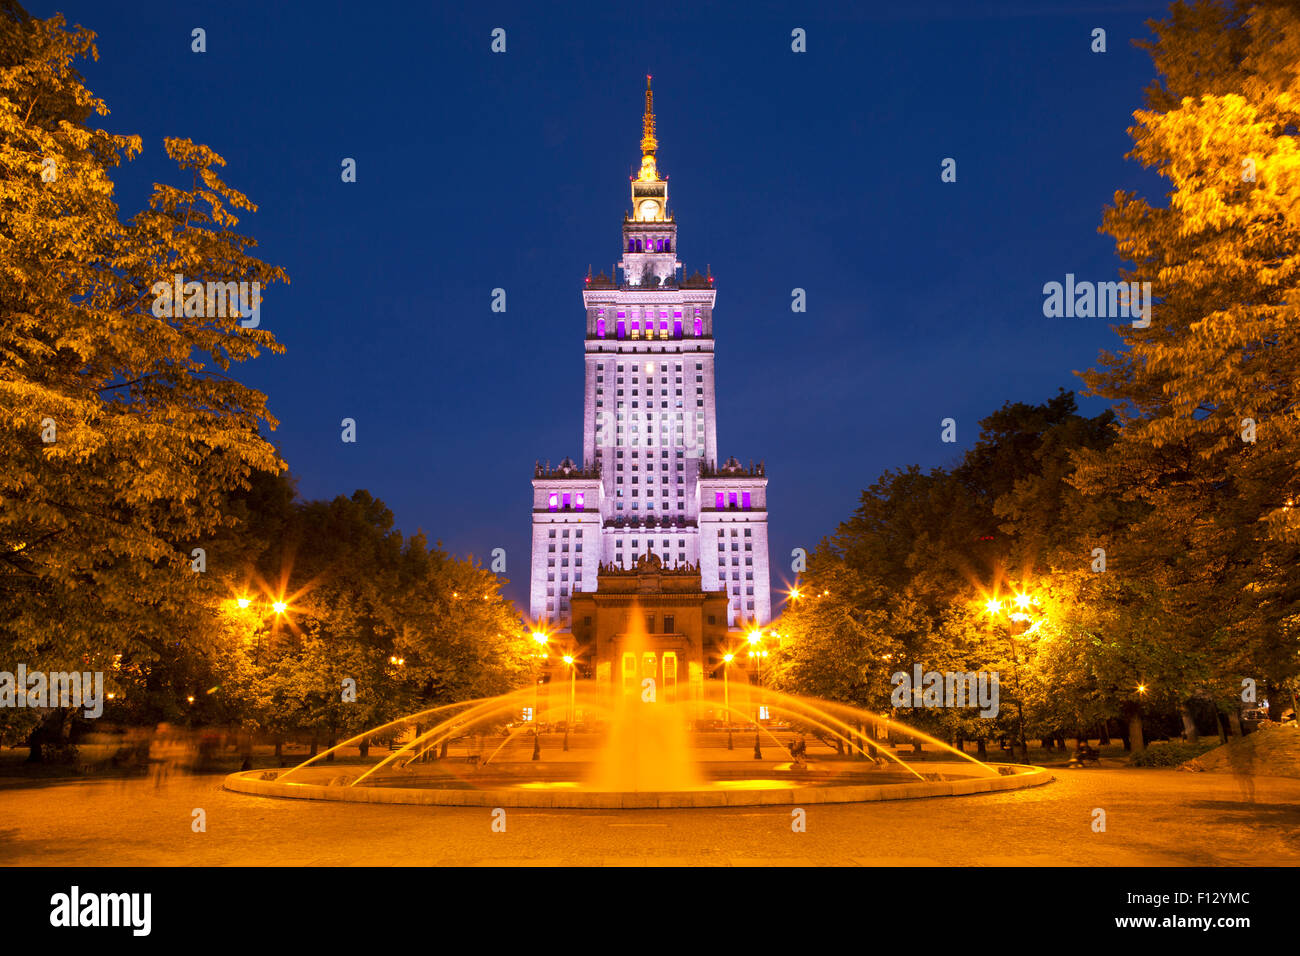 The Palace of Culture and Science in Warsaw, Poland at night. - Stock Image